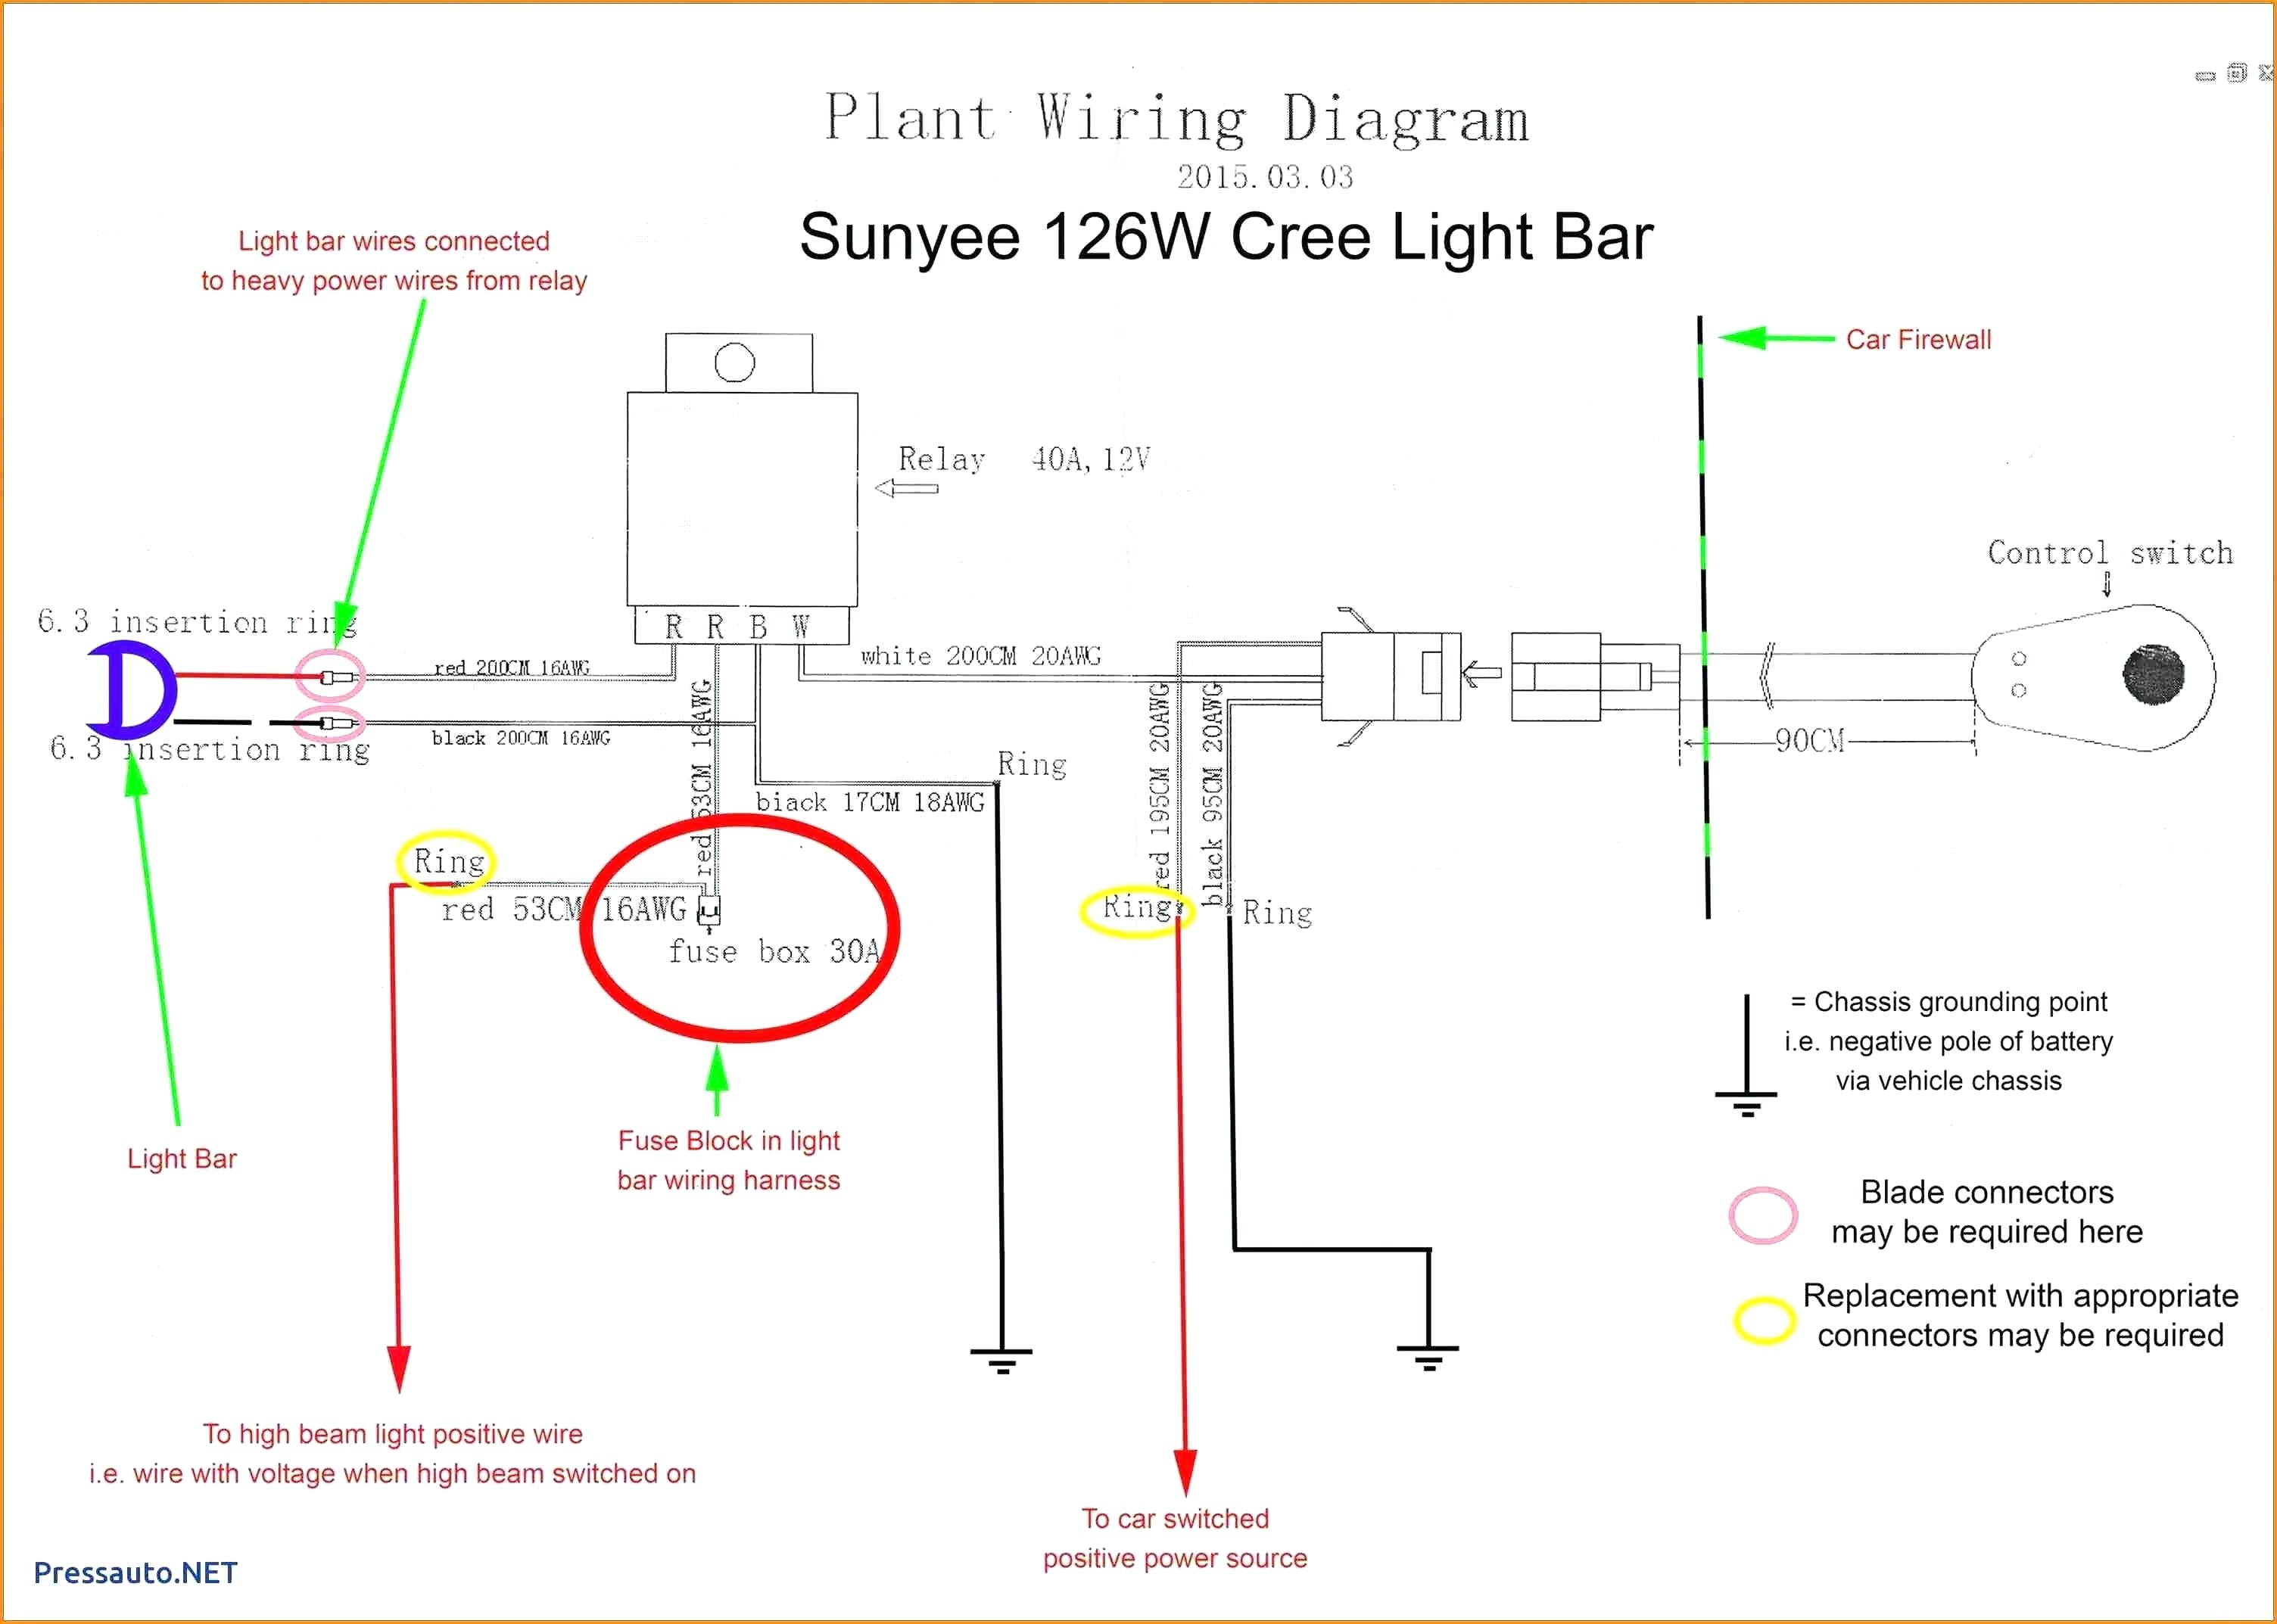 3 way switch wiring diagram pdf Download-3 Way Switch Wiring Diagram Pdf 3 Way Switch Wiring Diagram Multiple Lights Pdf New 17-e